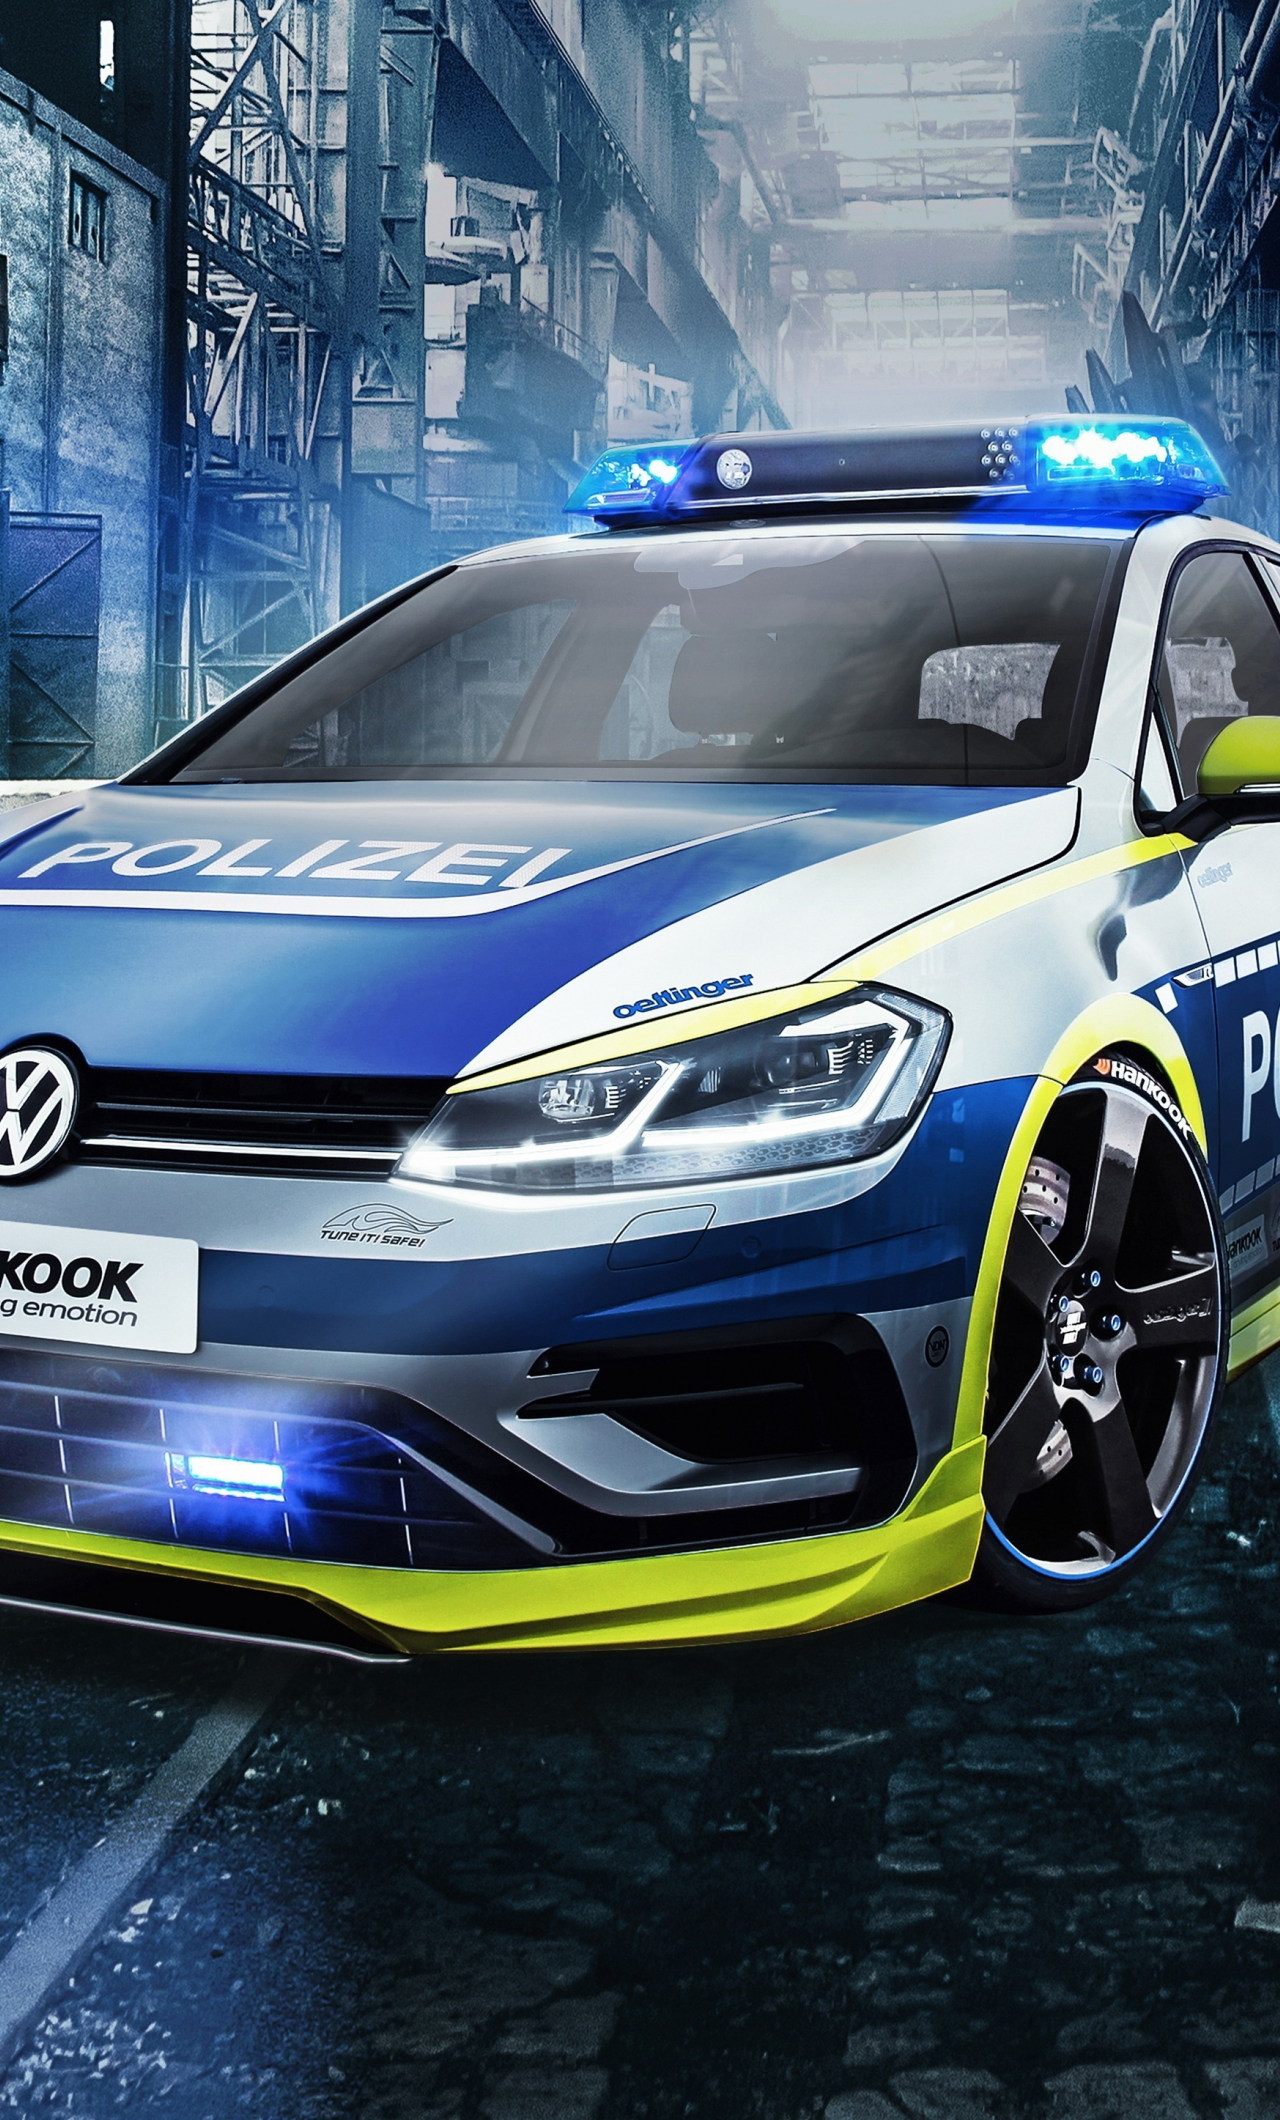 Download 1280x2120 Wallpaper Oettinger Volkswagen Golf 400r Tune It Safe Car Iphone 6 Plus 1280x2120 Hd Image Background 1309